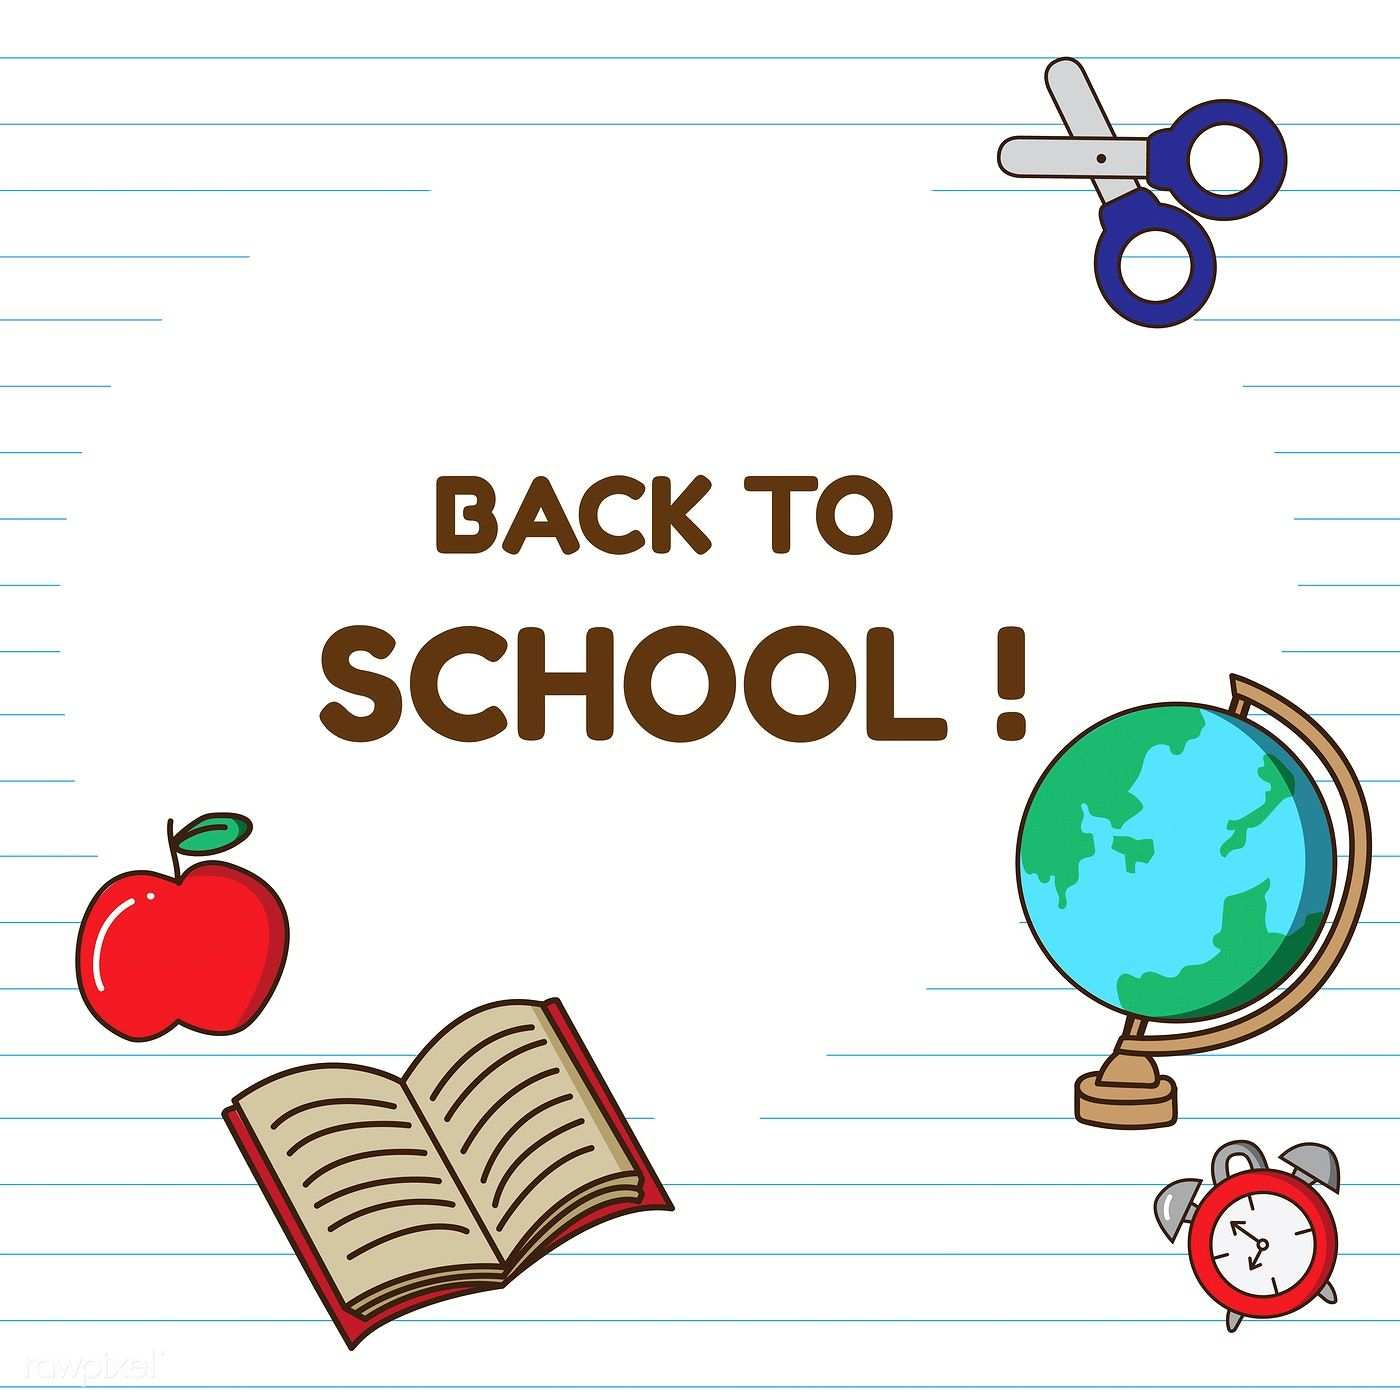 Back To School Stationery Vector Set Free Image By Rawpixel Com Nap Vector Back To School Stationery School Banner School Stationery